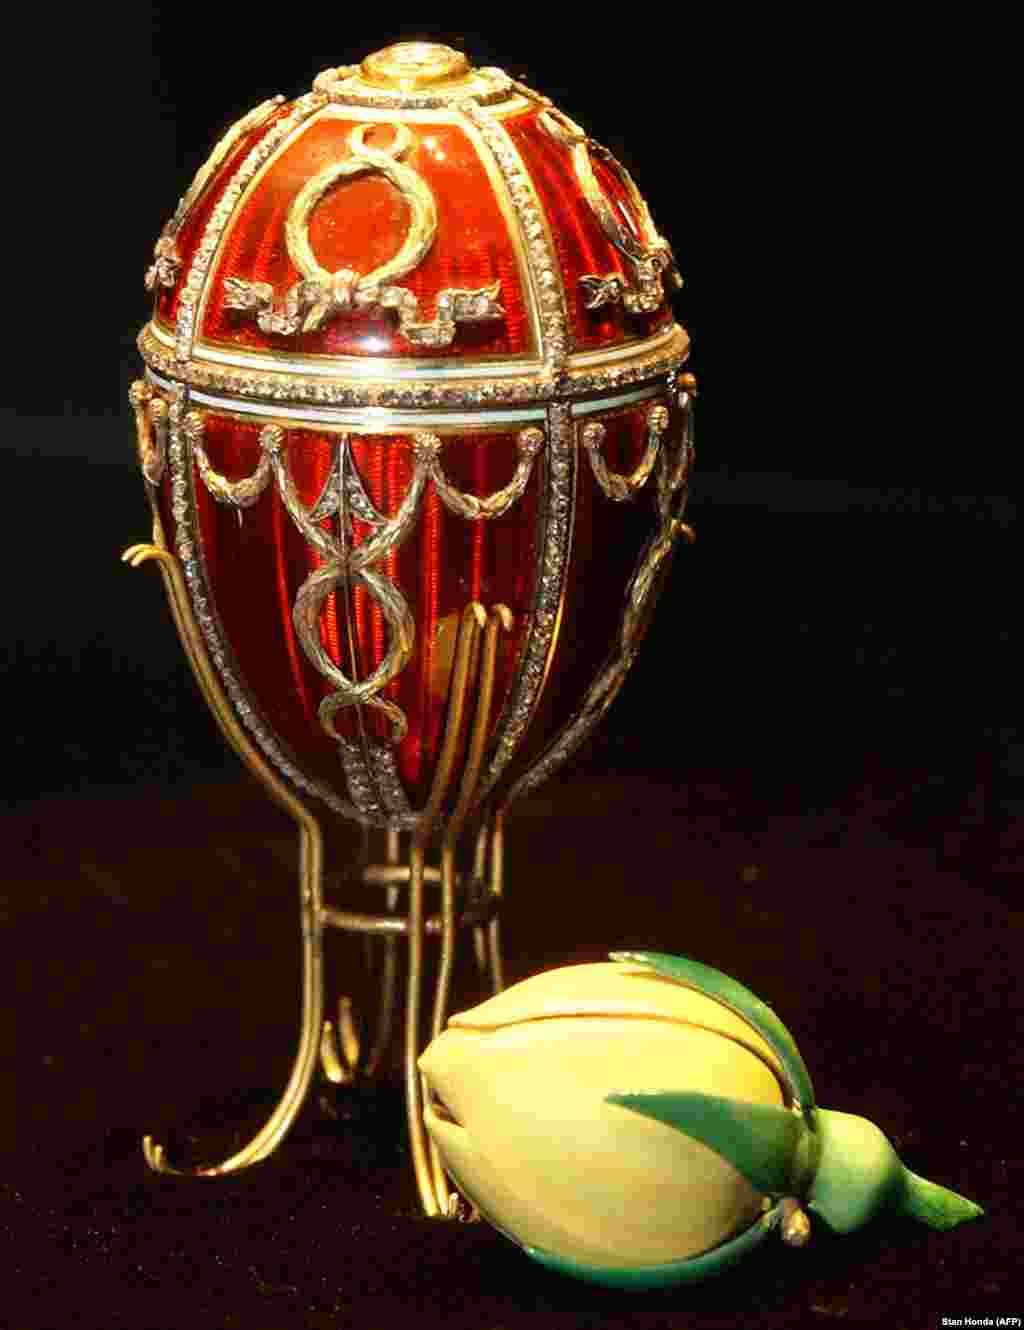 The Rosebud Egg, the first that Nicholas II gifted to his wife, Aleksandra. A cupid's arrow made from diamonds enlivens the red lacquer, while inside, an enamel rosebud symbolizes the love blooming between the newlyweds. A year after this egg was presented, a stampede at a celebration following Nicholas's coronation killed hundreds in the crowd. Following the advice of relatives, Nicholas proceeded with the coronation celebrations as ordinary Russians mourned their dead. It was his first fateful mistake as tsar.